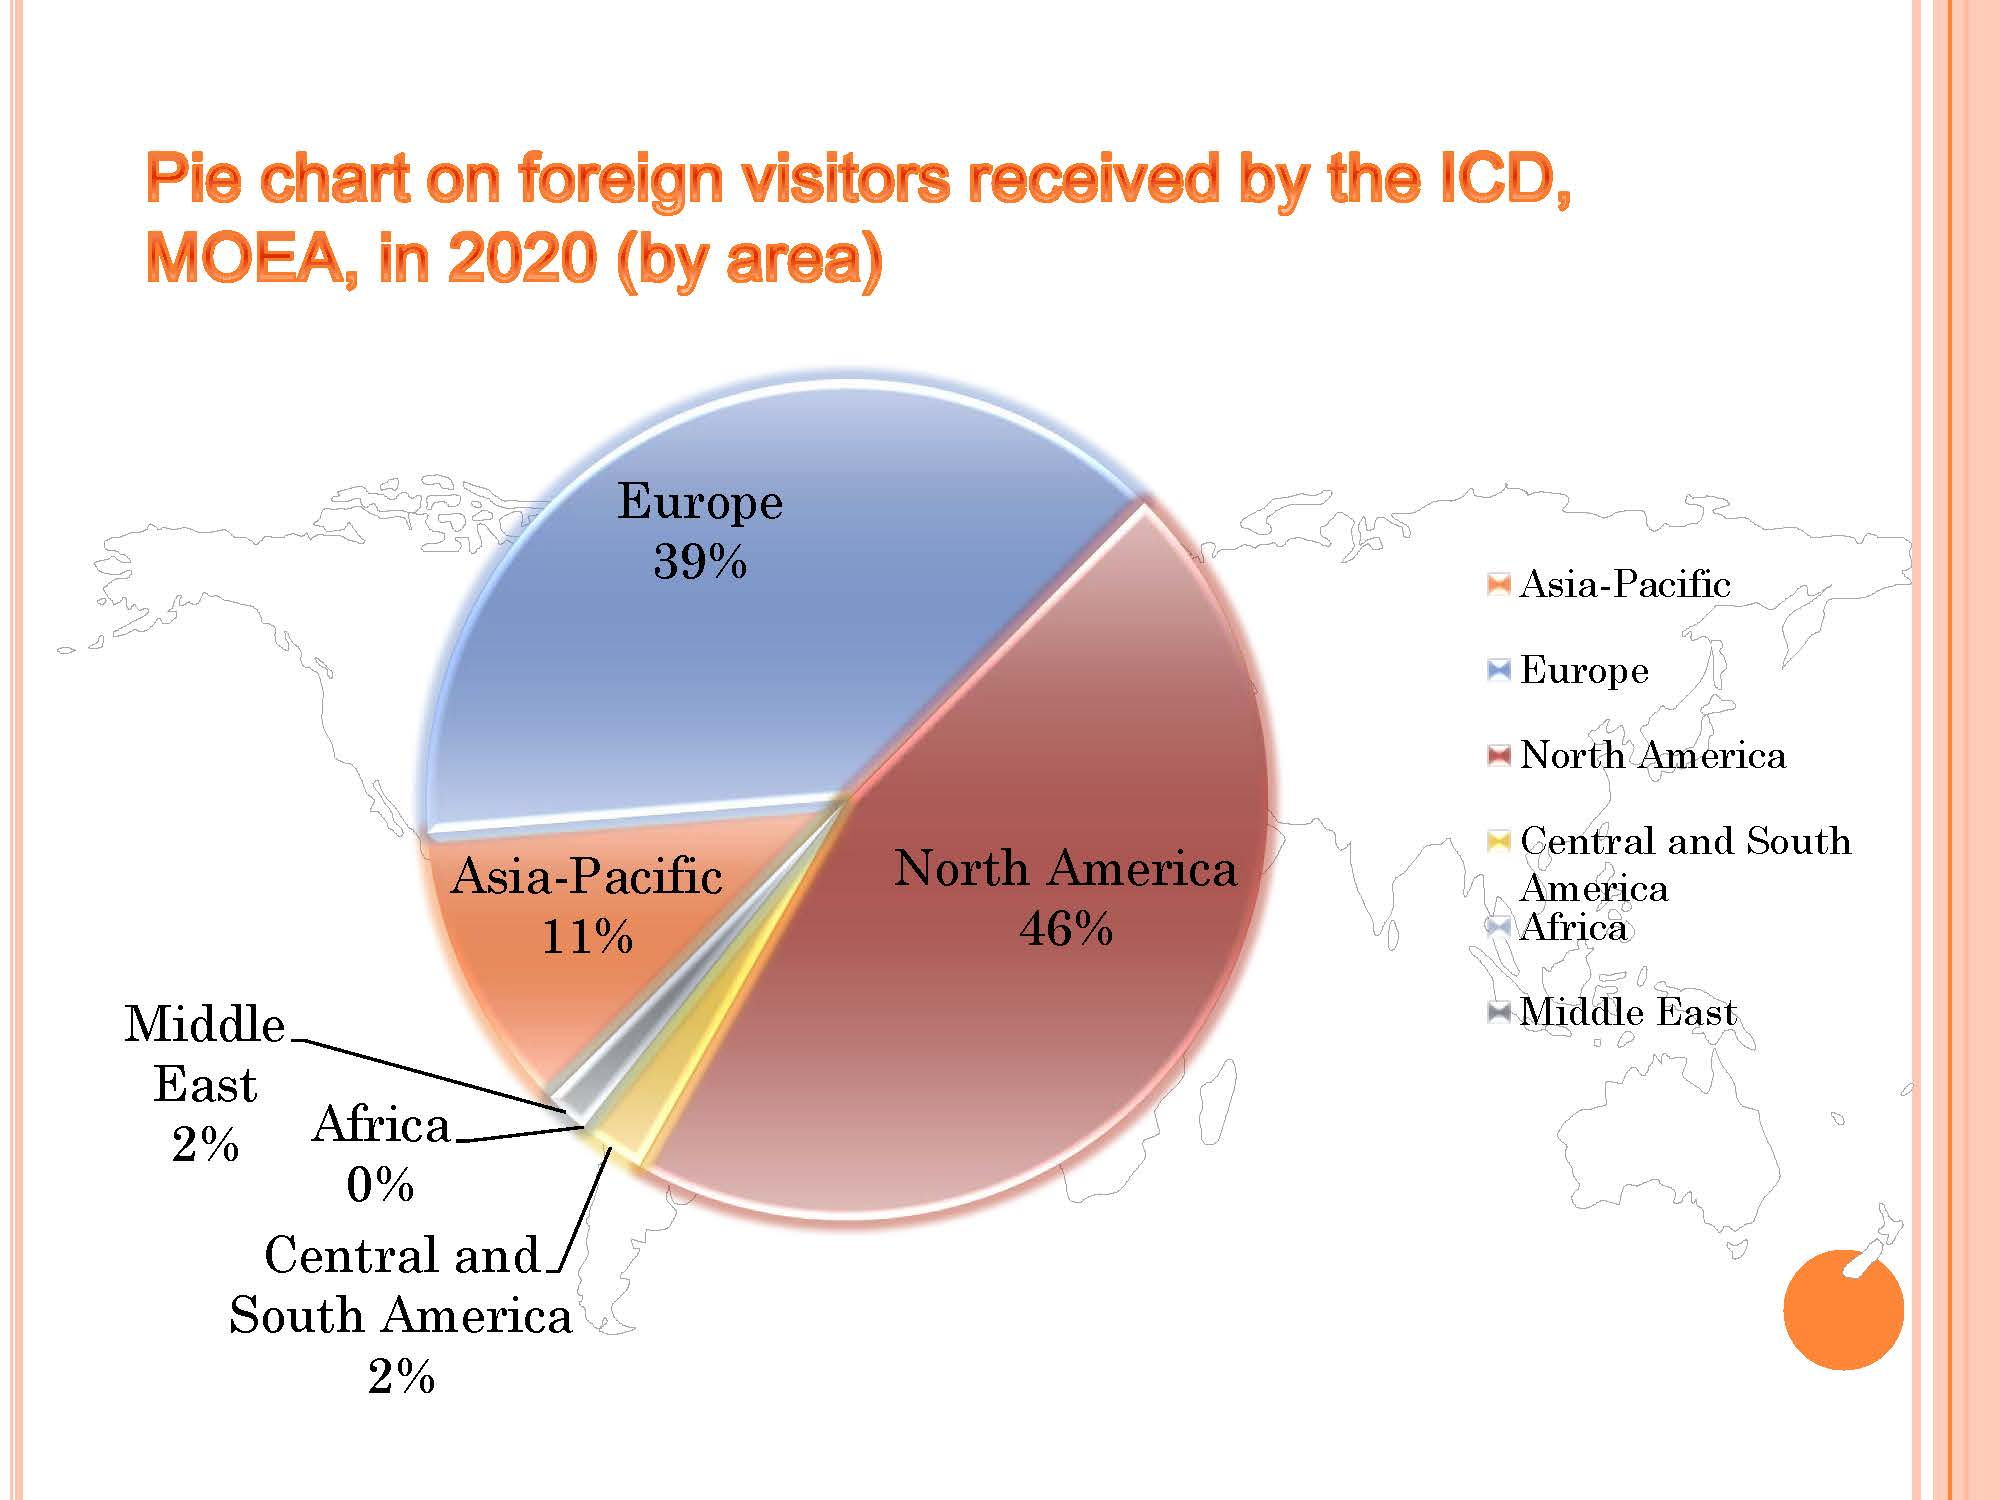 Pie chart on foreign visitors received by the ICD, in 2020 (by area)